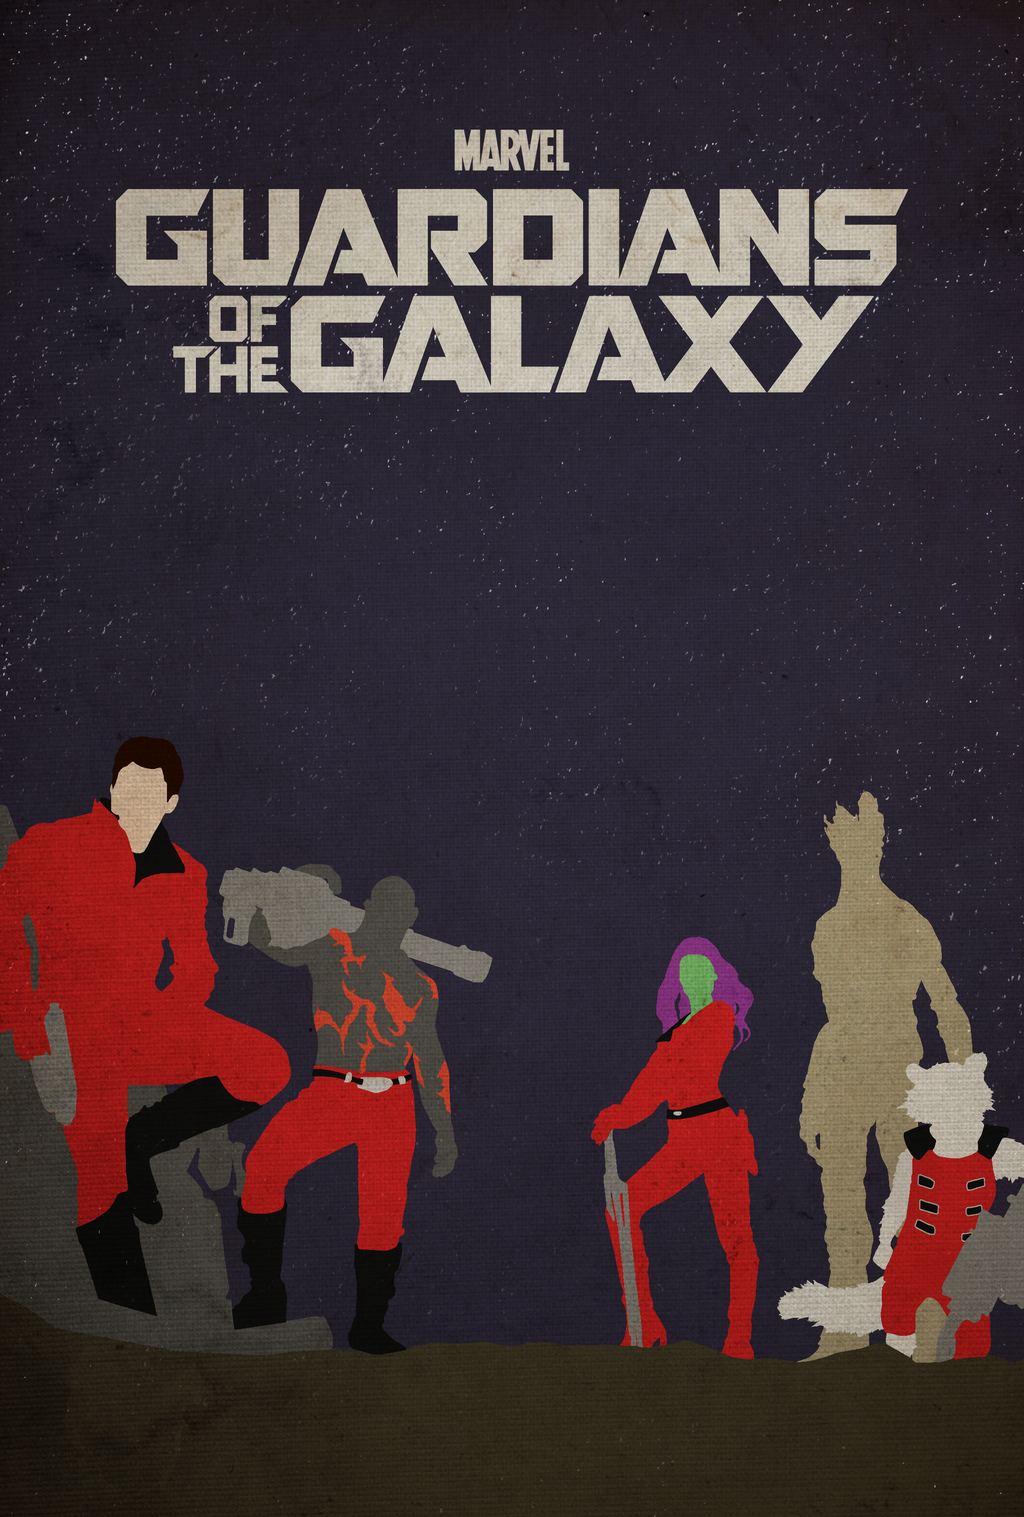 Guardians of the Galaxy - Poster by edwardjmoran